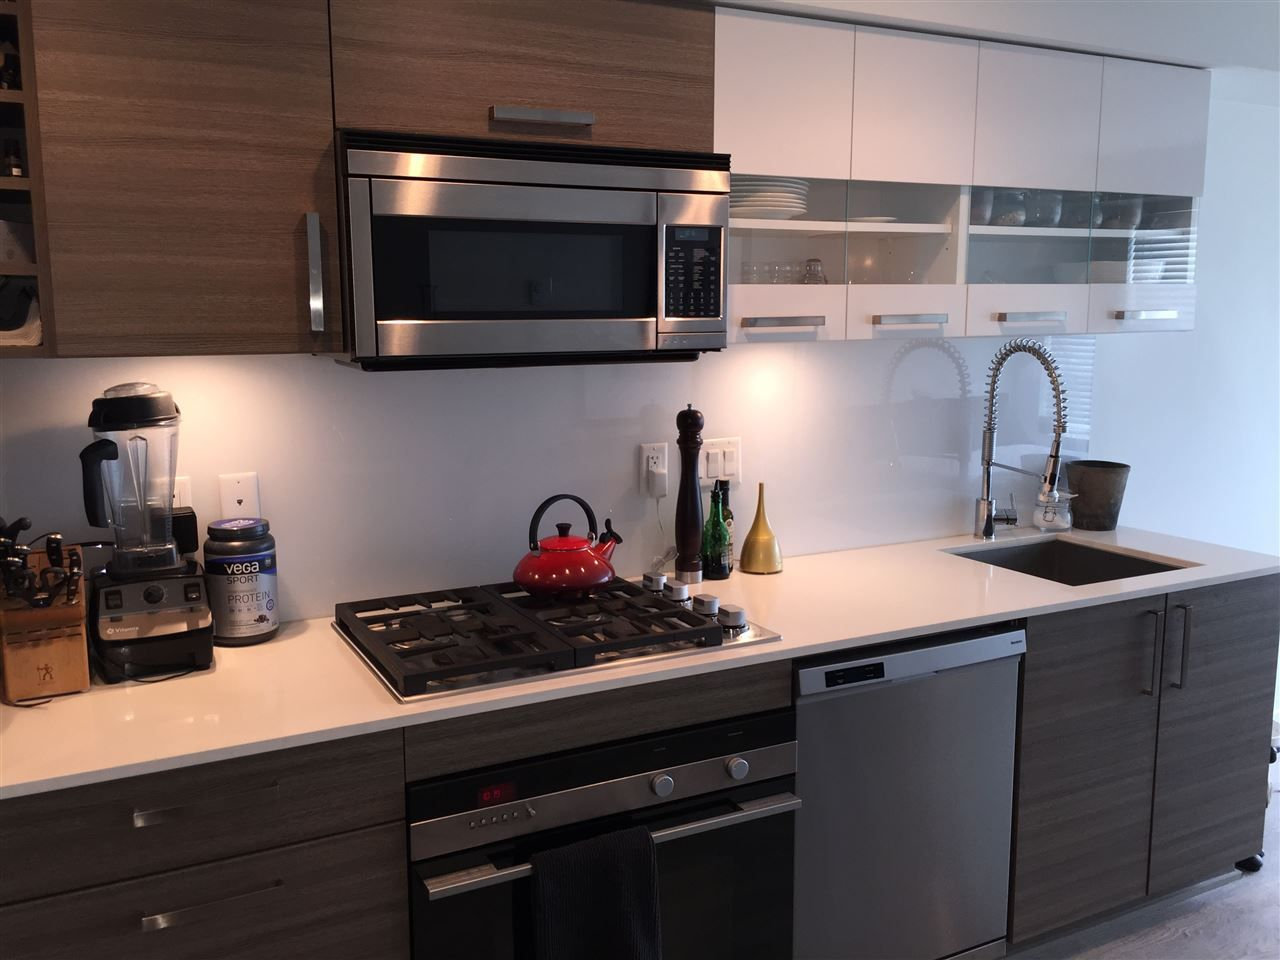 """Photo 2: Photos: 202 2858 W 4TH Avenue in Vancouver: Kitsilano Condo for sale in """"Kits West"""" (Vancouver West)  : MLS®# R2085977"""